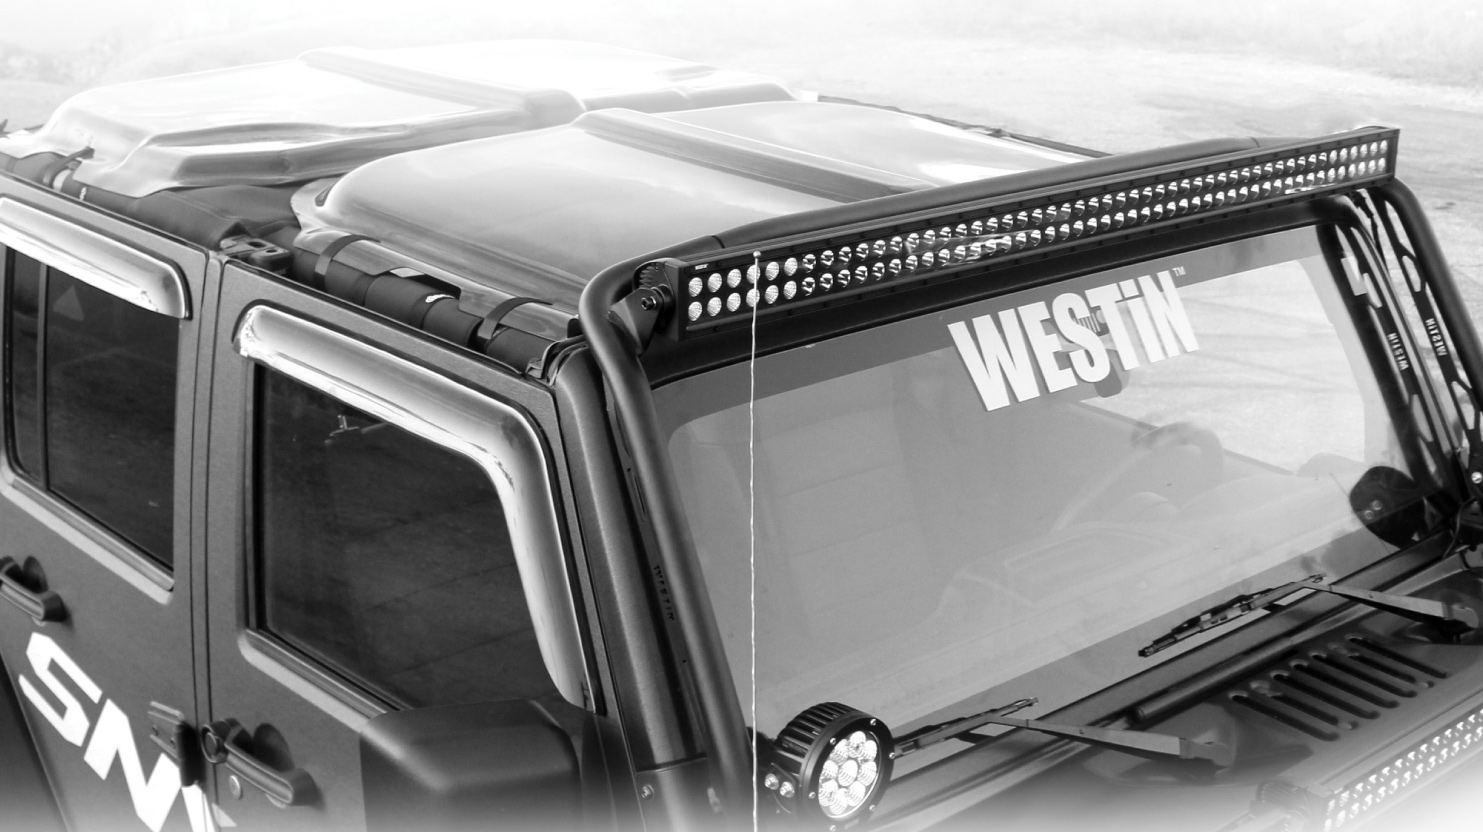 Westin 09 12212 20c stealth led light bar autoaccessoriesgarage westin stealth led light bar westin thumbnail thumbnail thumbnail thumbnail mozeypictures Image collections